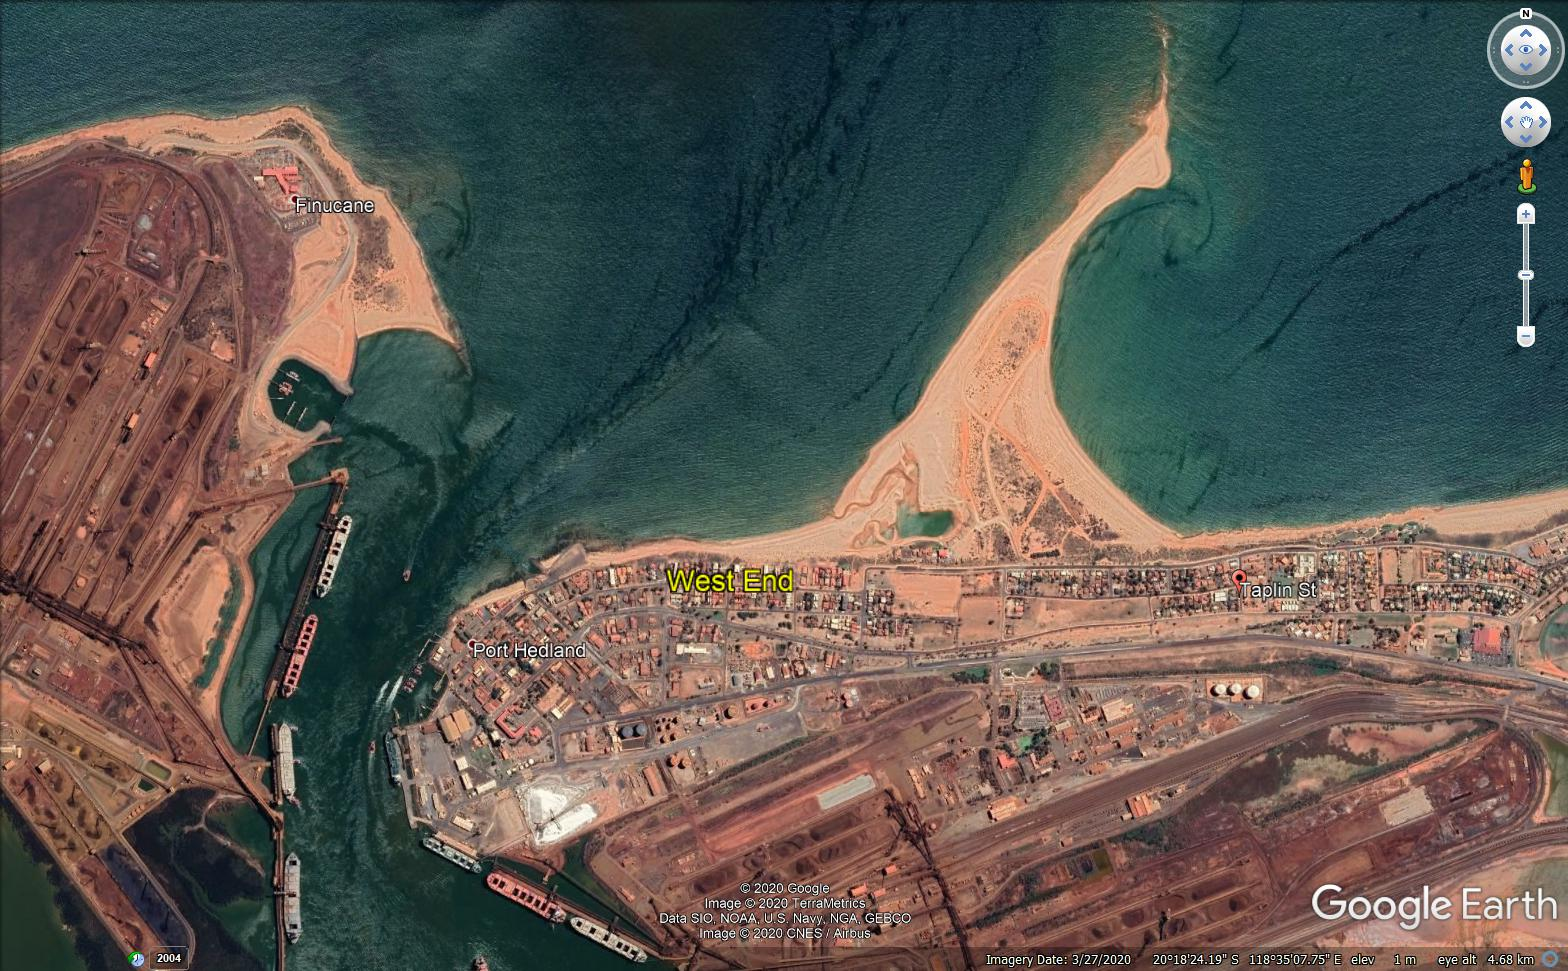 Google Earth image of the Port Hedland township west end